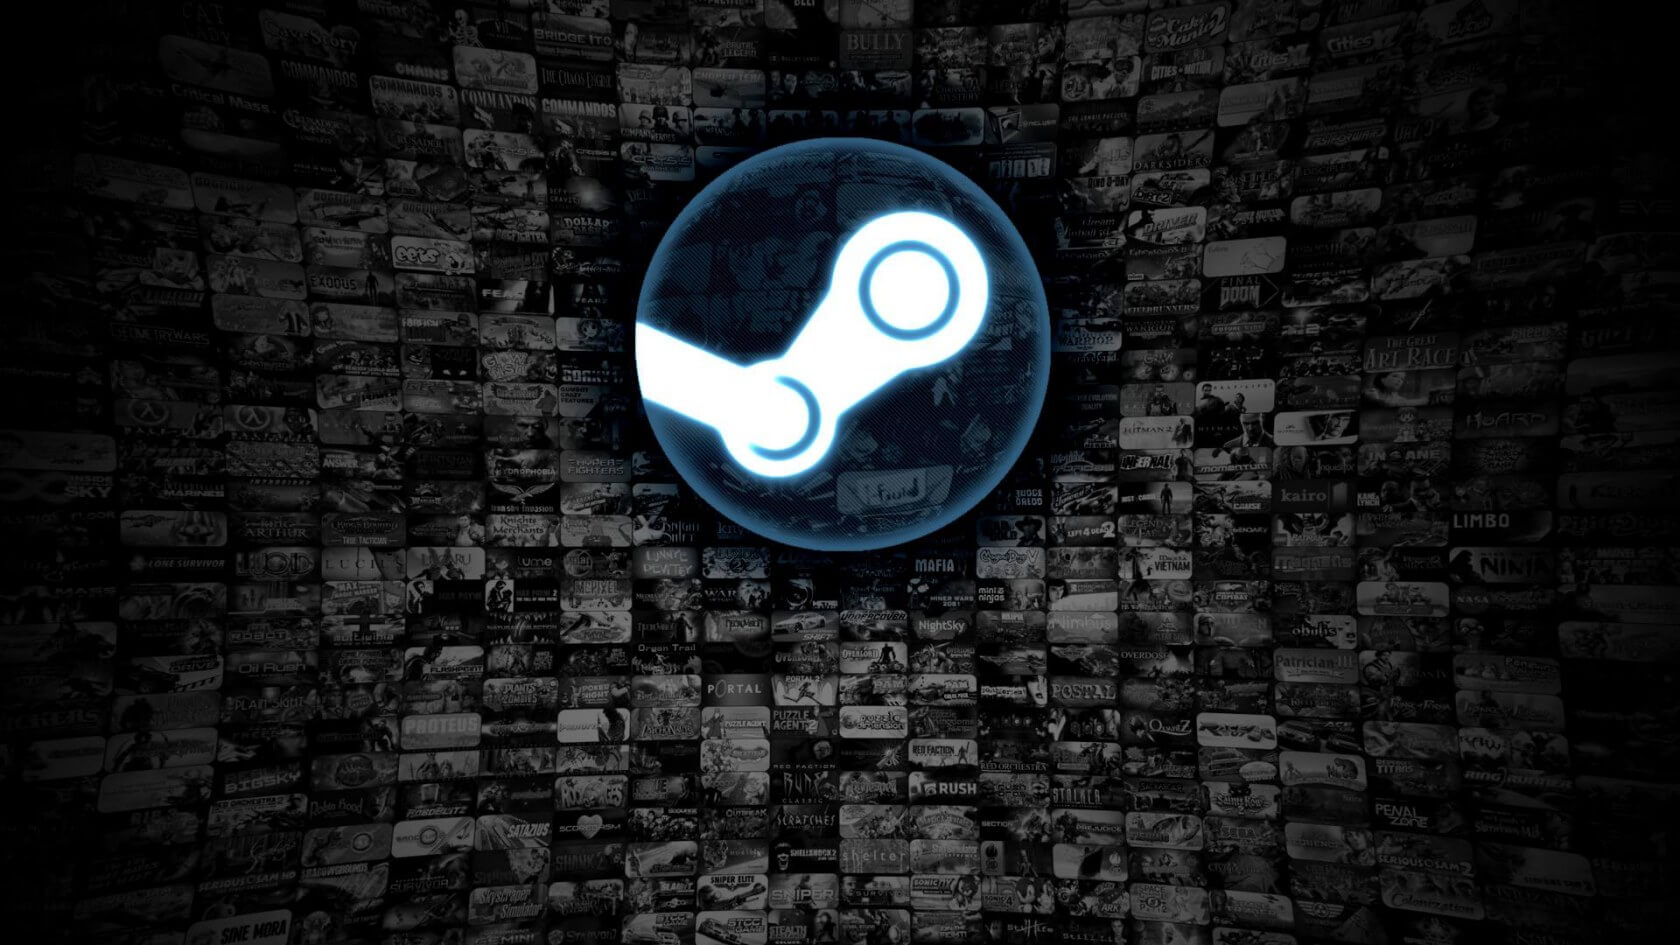 Nobody Watched Movies On Steam, So The Video Section Is Going Away